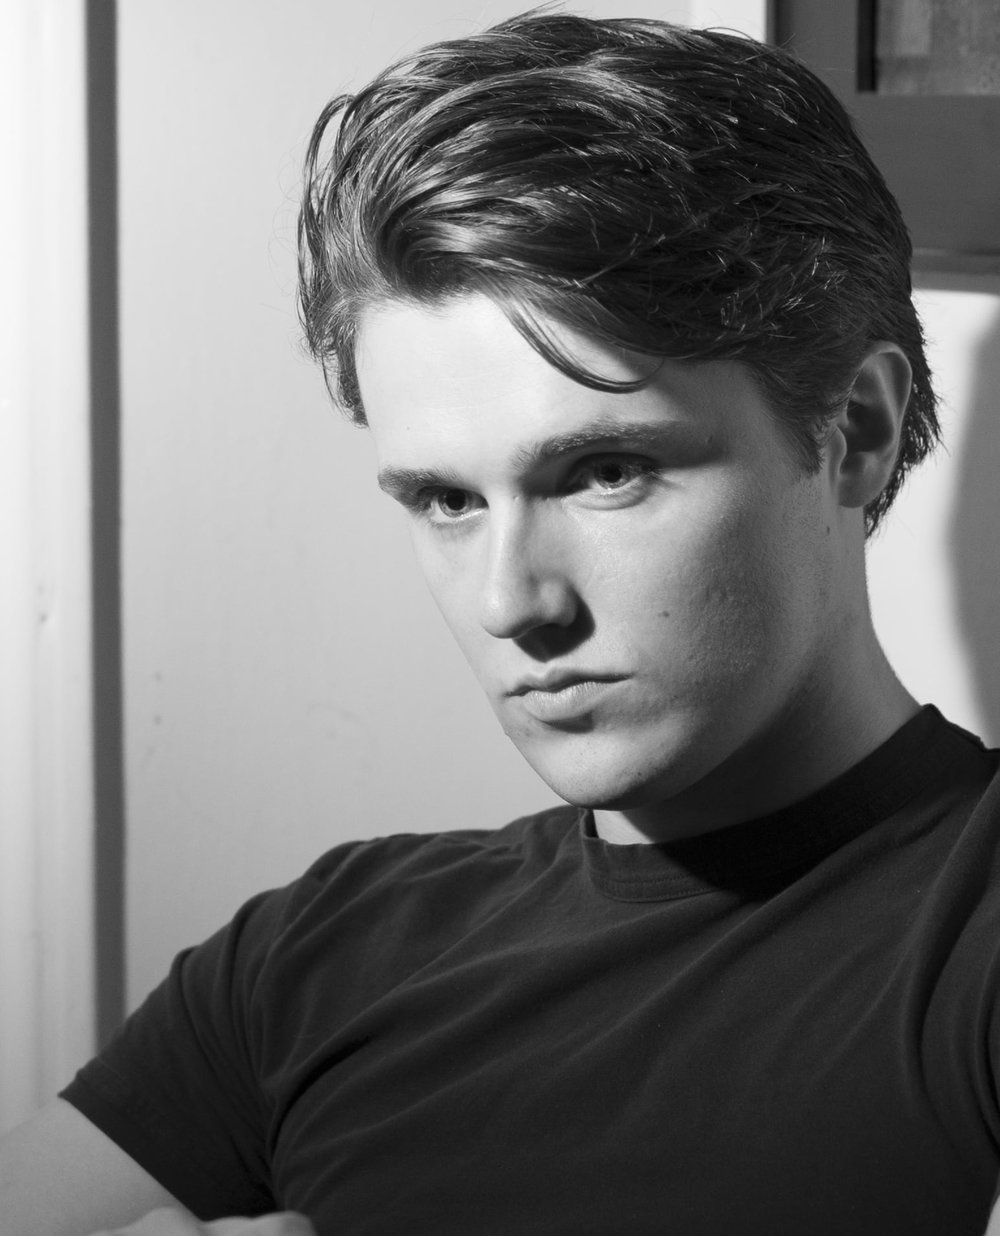 Eugene Simon Black and White.jpg